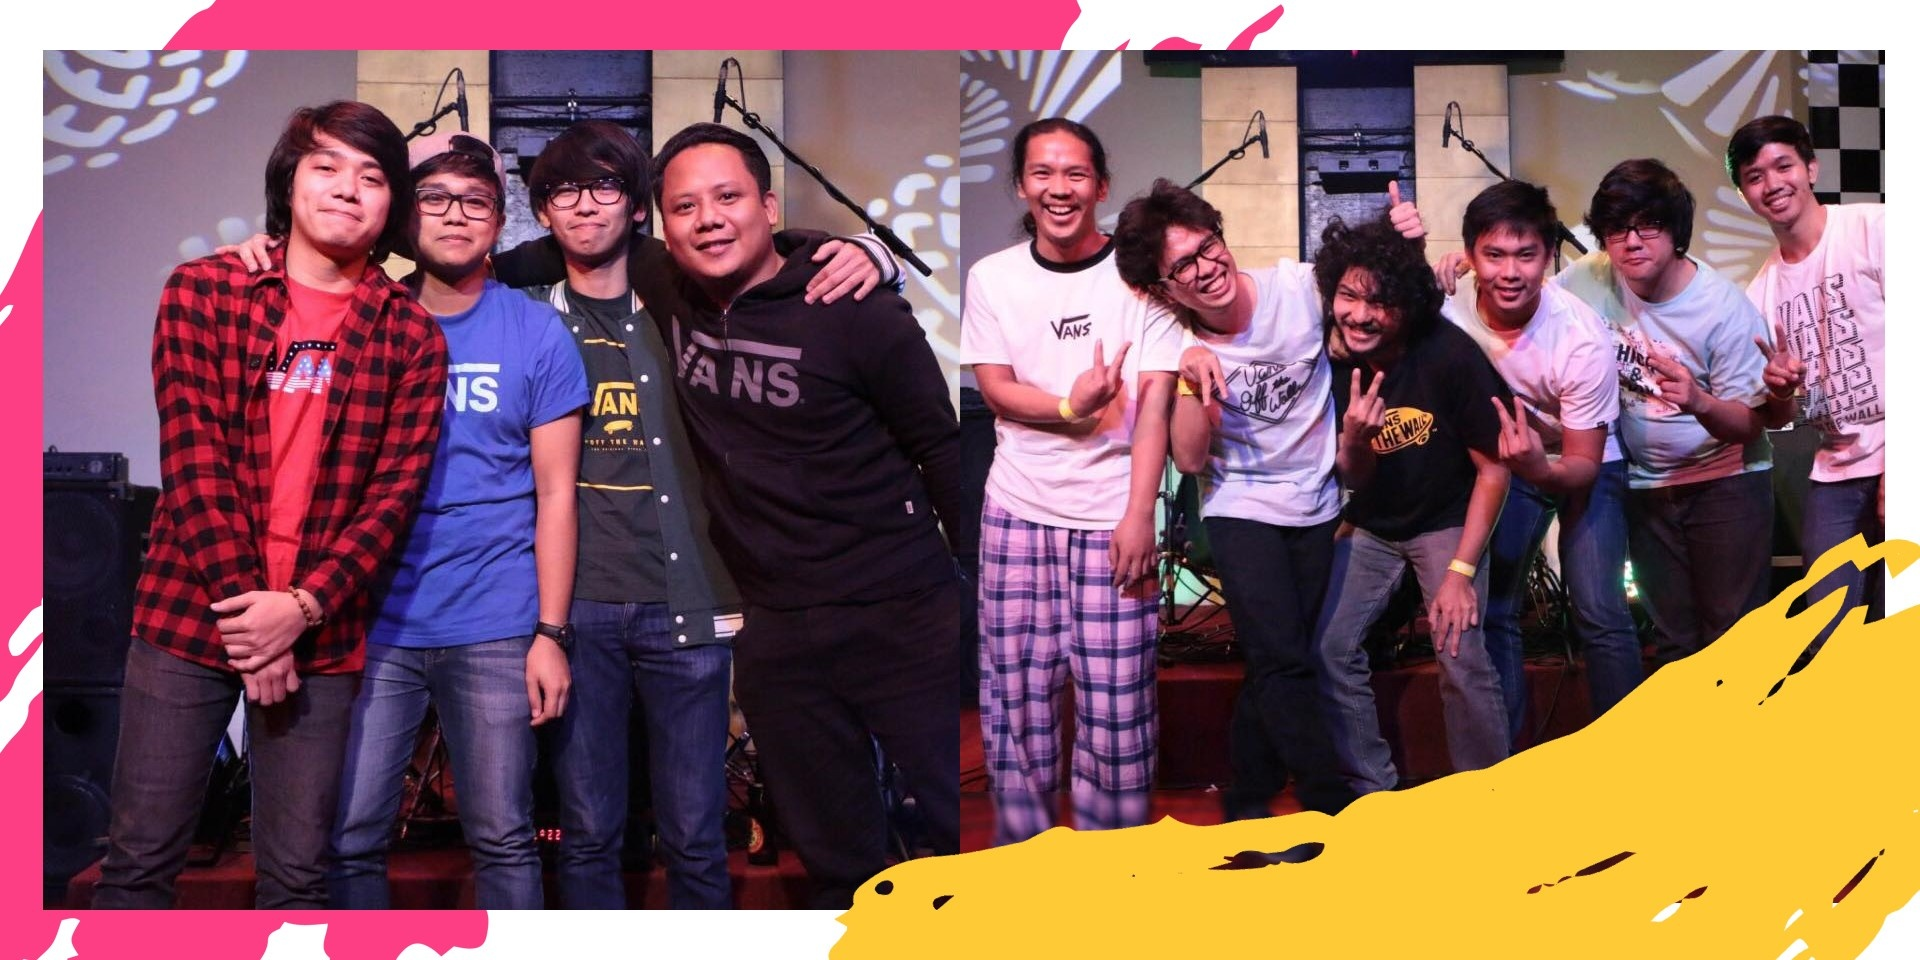 Vans Philippines announces Top 5 finalists of Musicians Wanted